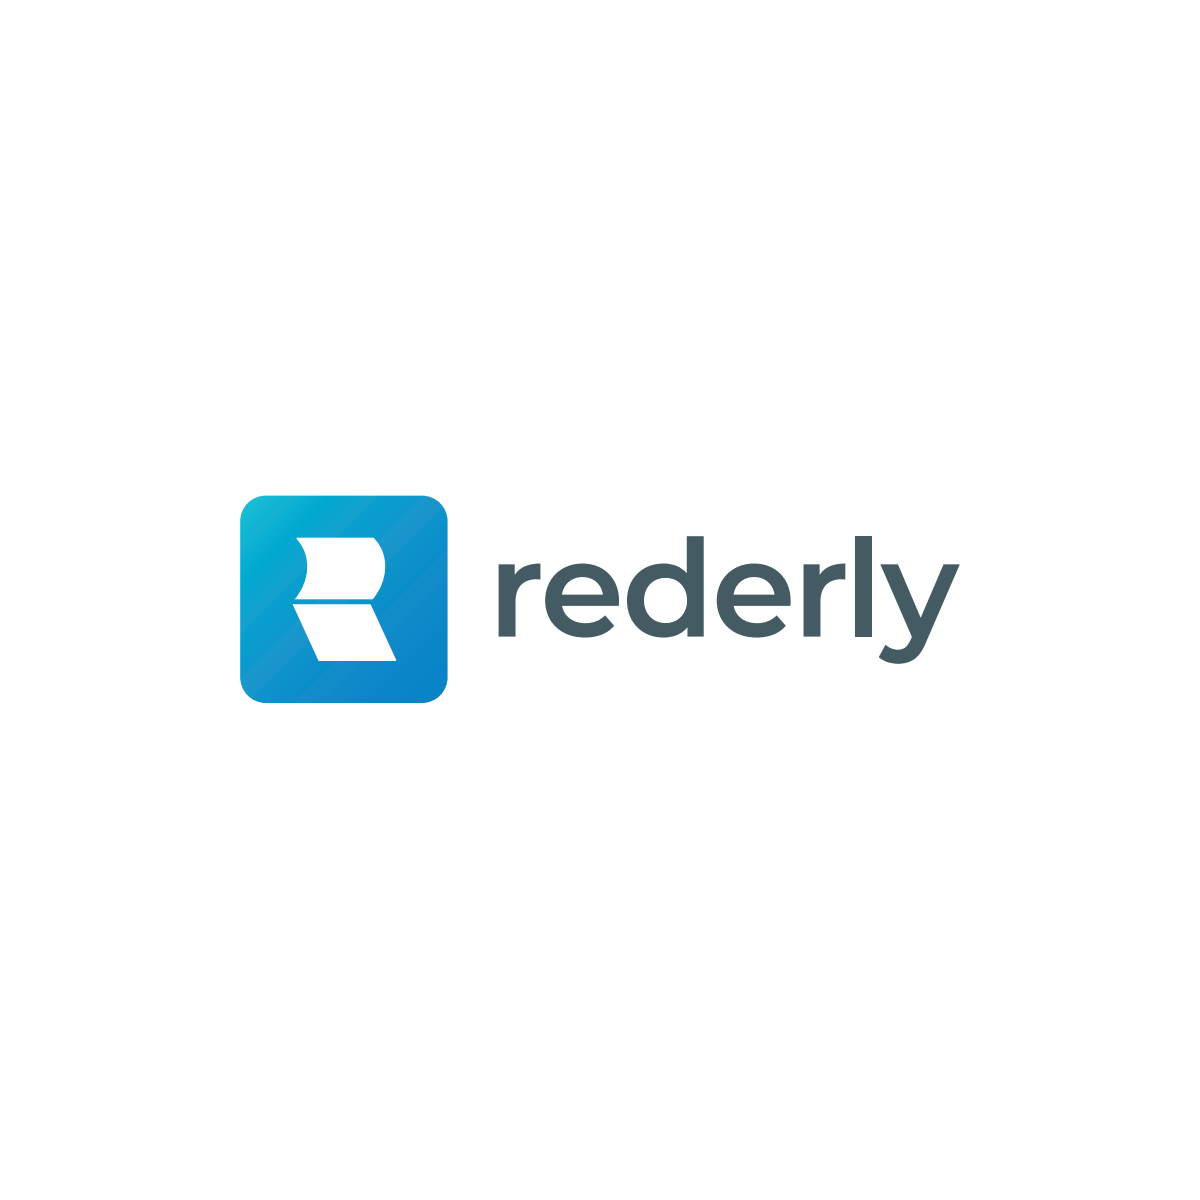 Logo & Brand Identity for an Education Technology Startup (Rederly)